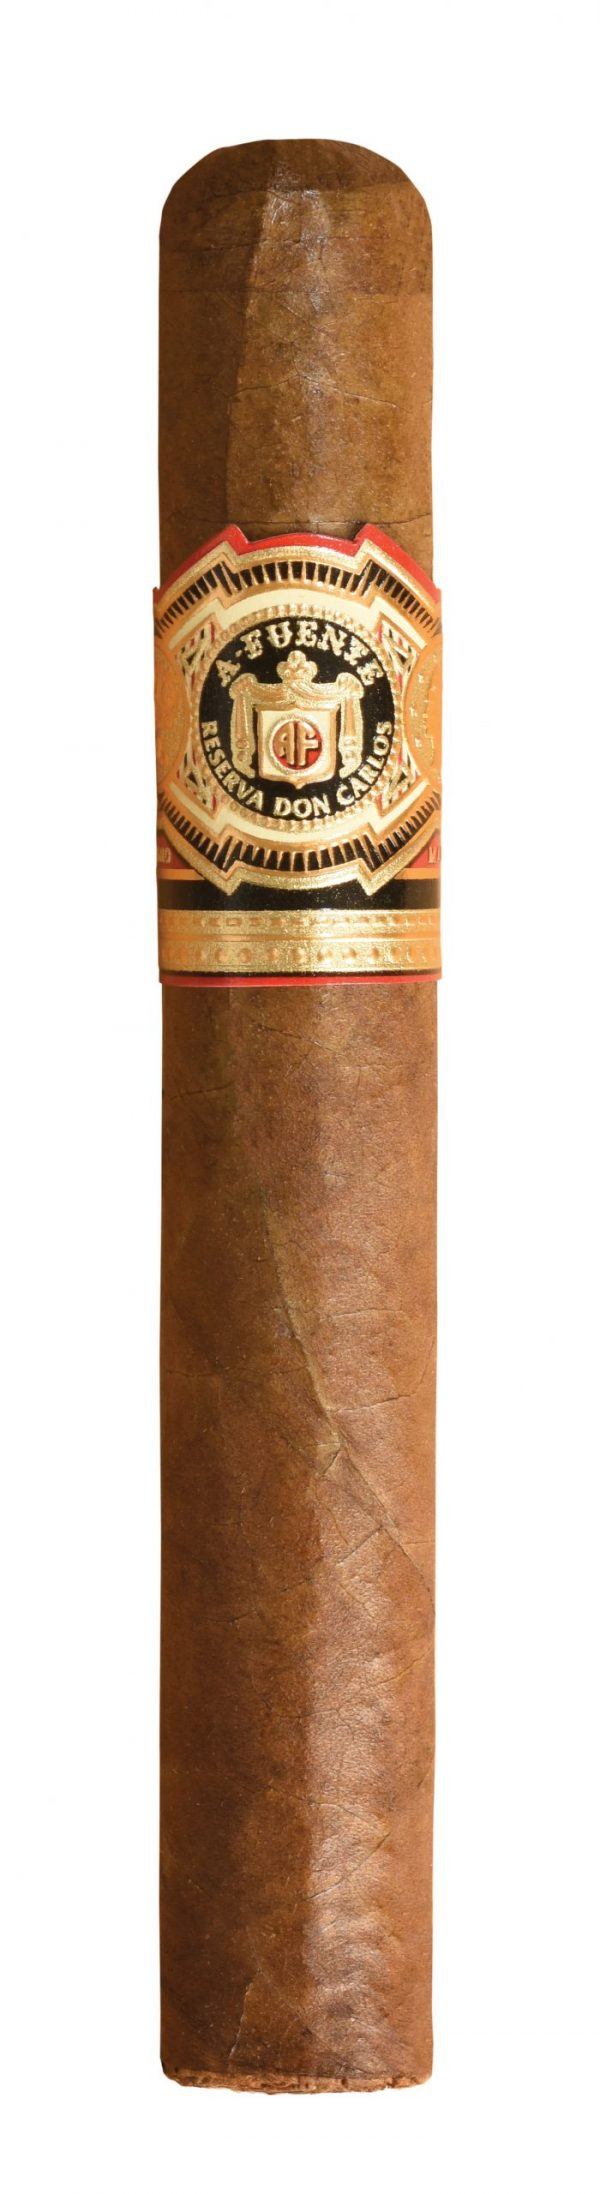 arturo fuente don carlos double robusto single cigar